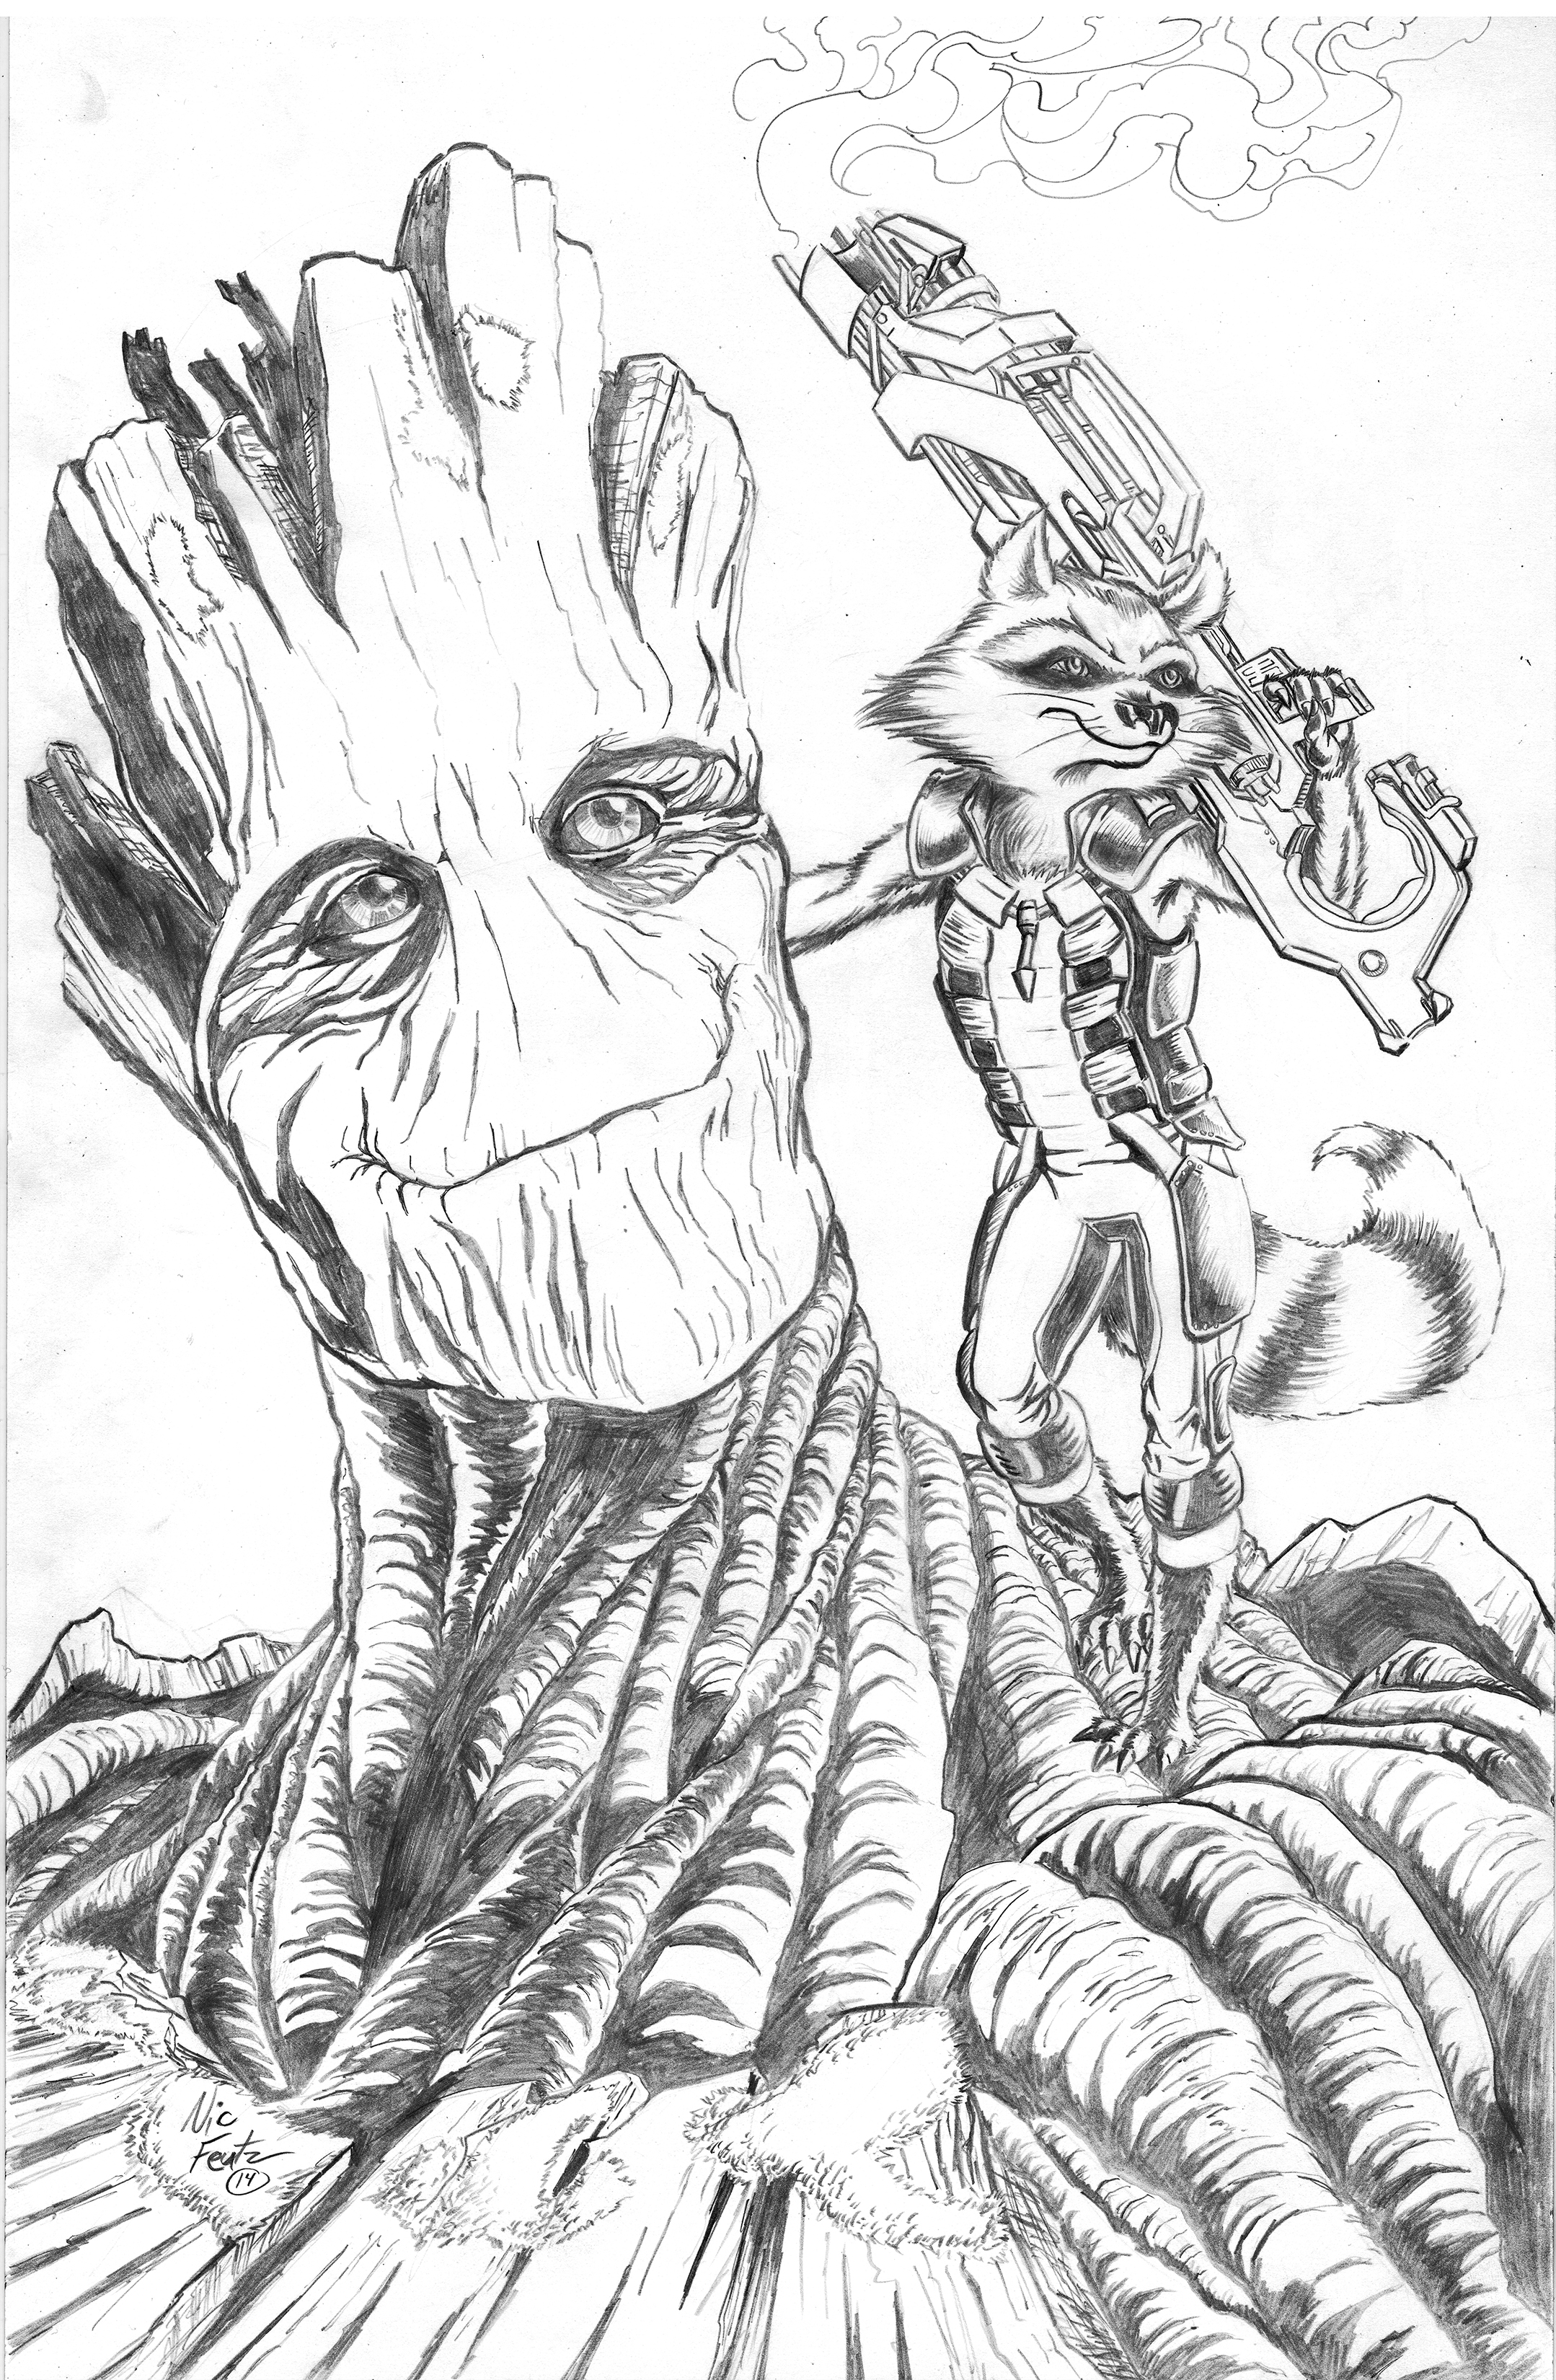 Drawn racoon groot Groot and Racoon on